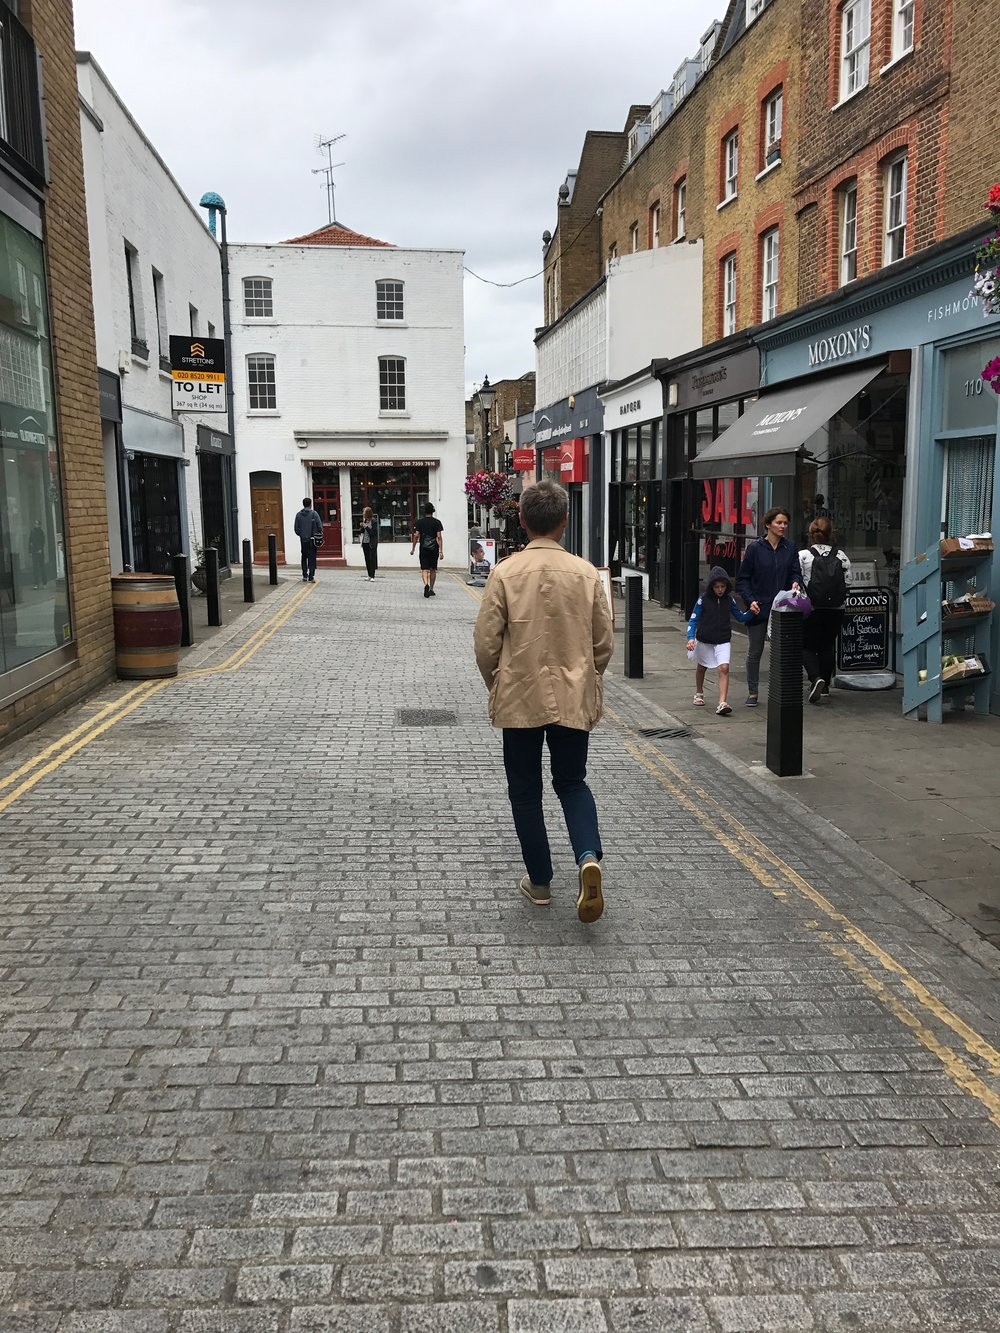 John explores Islington, an up-and-coming London neighborhood that has really transformed since we first visited.